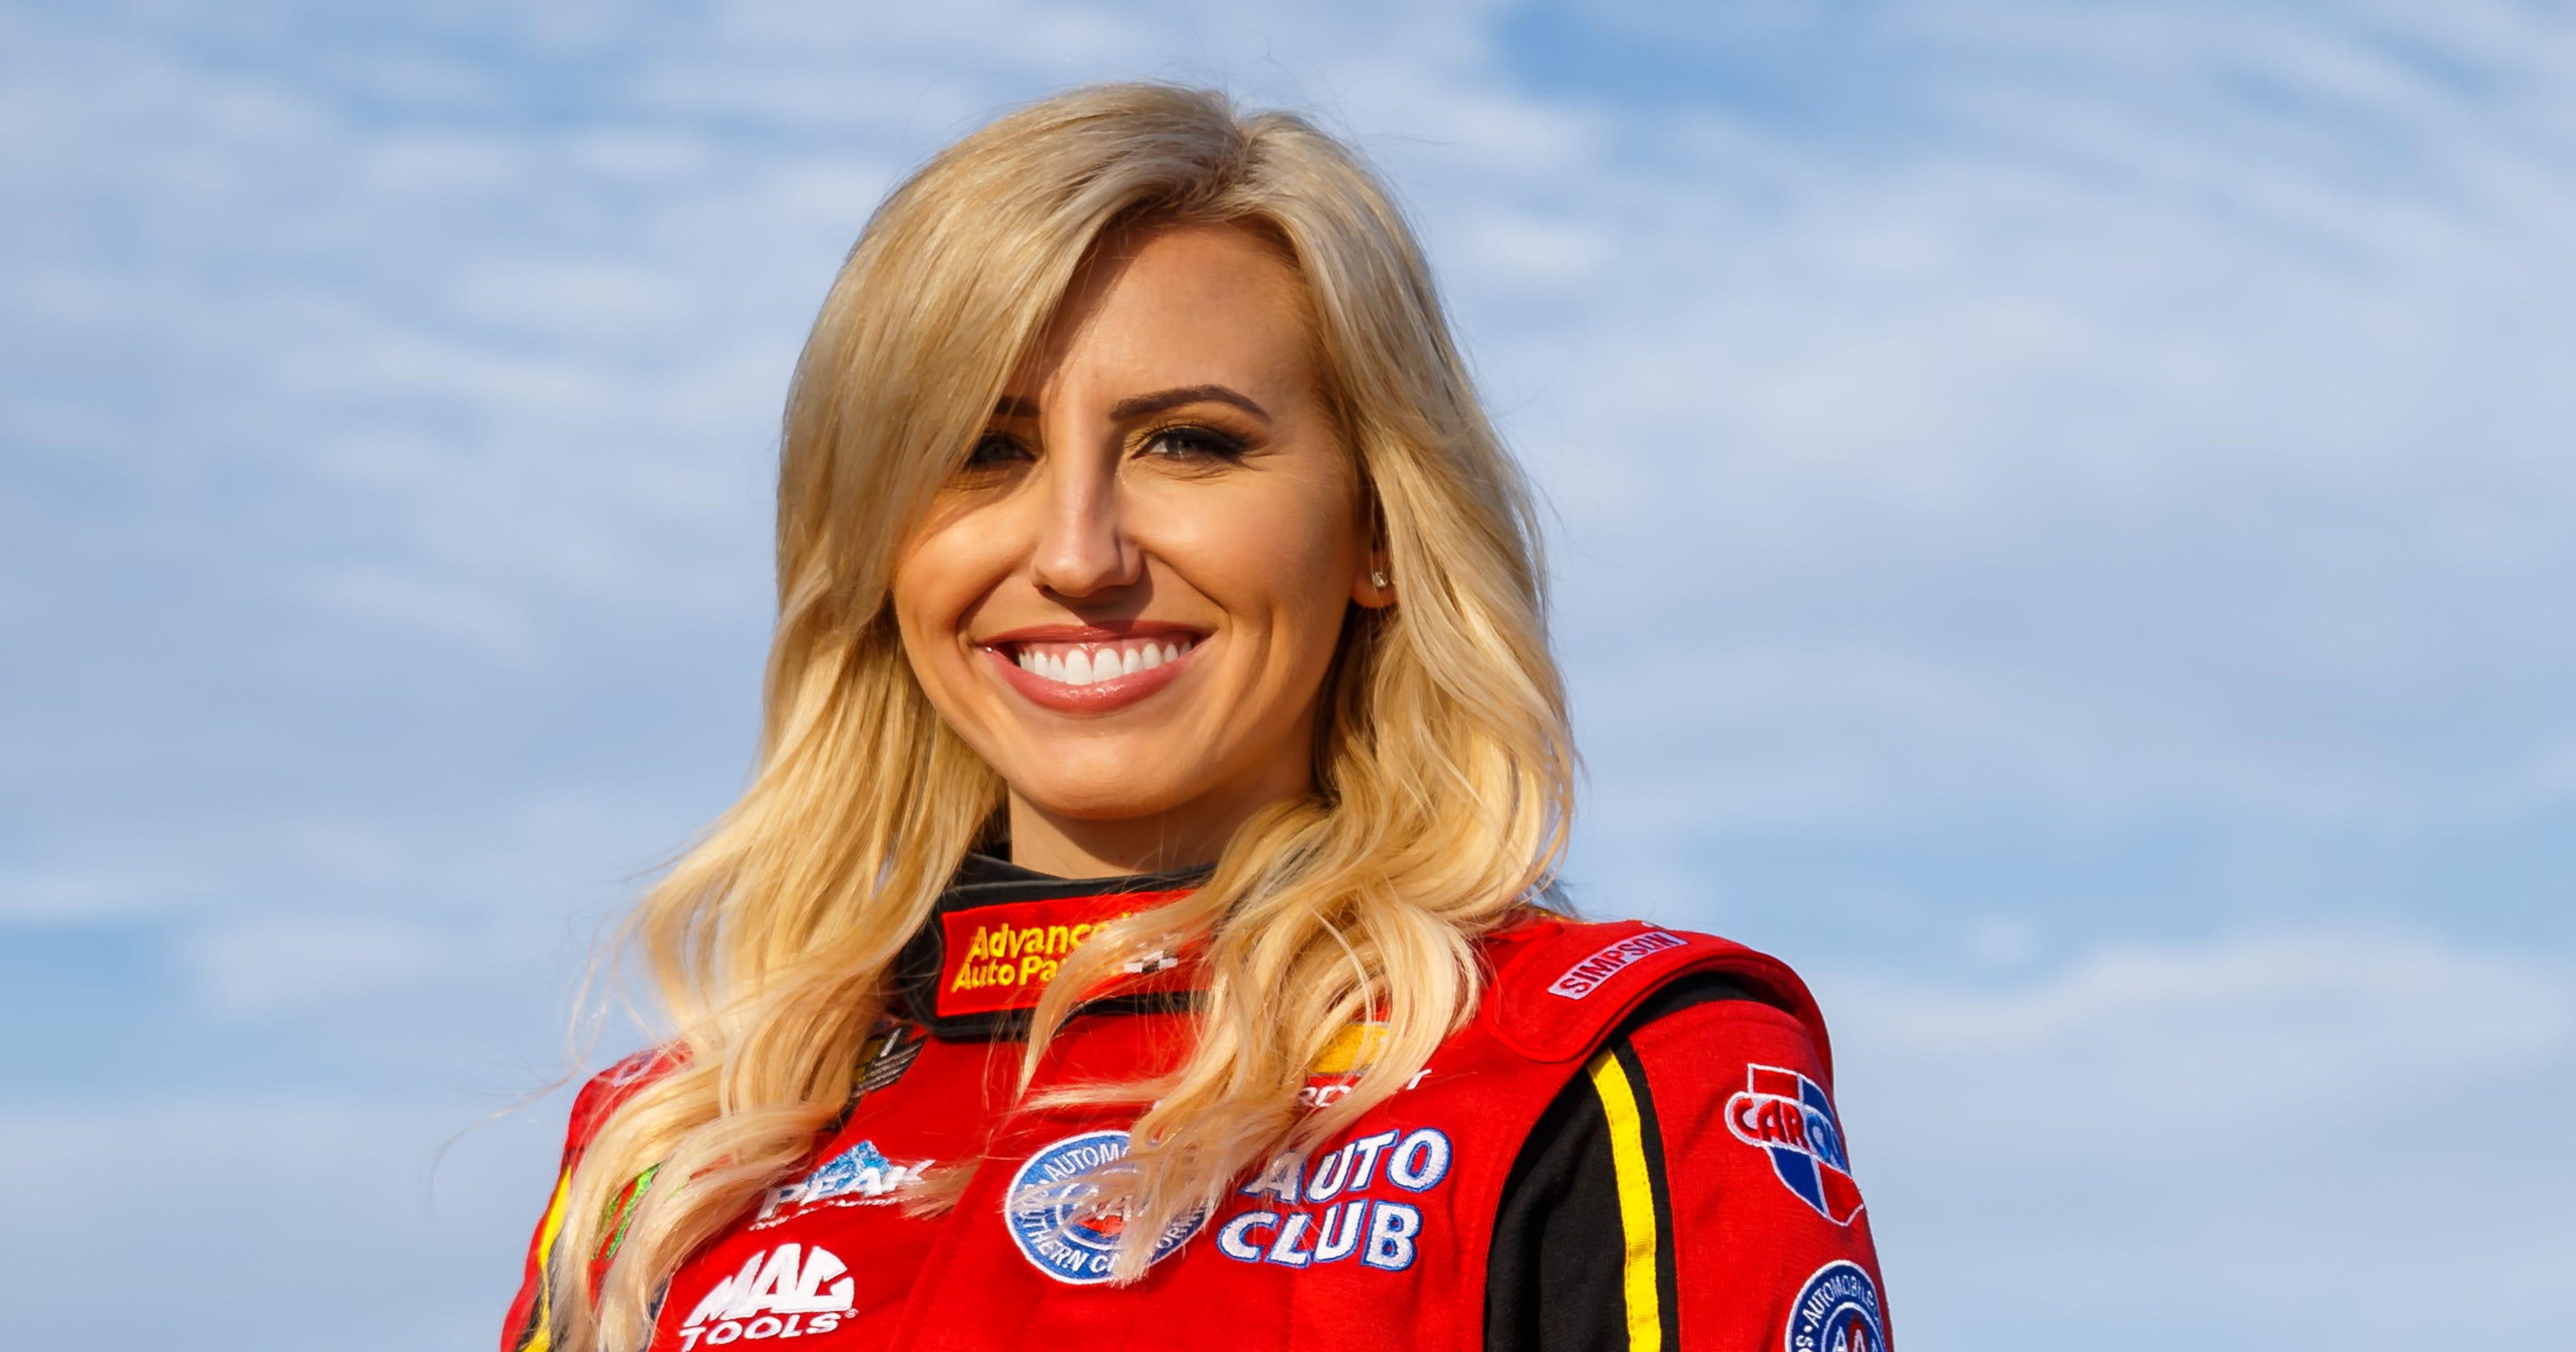 Courtney Force And Nascar Nhra Star Will Set Pace In Clash